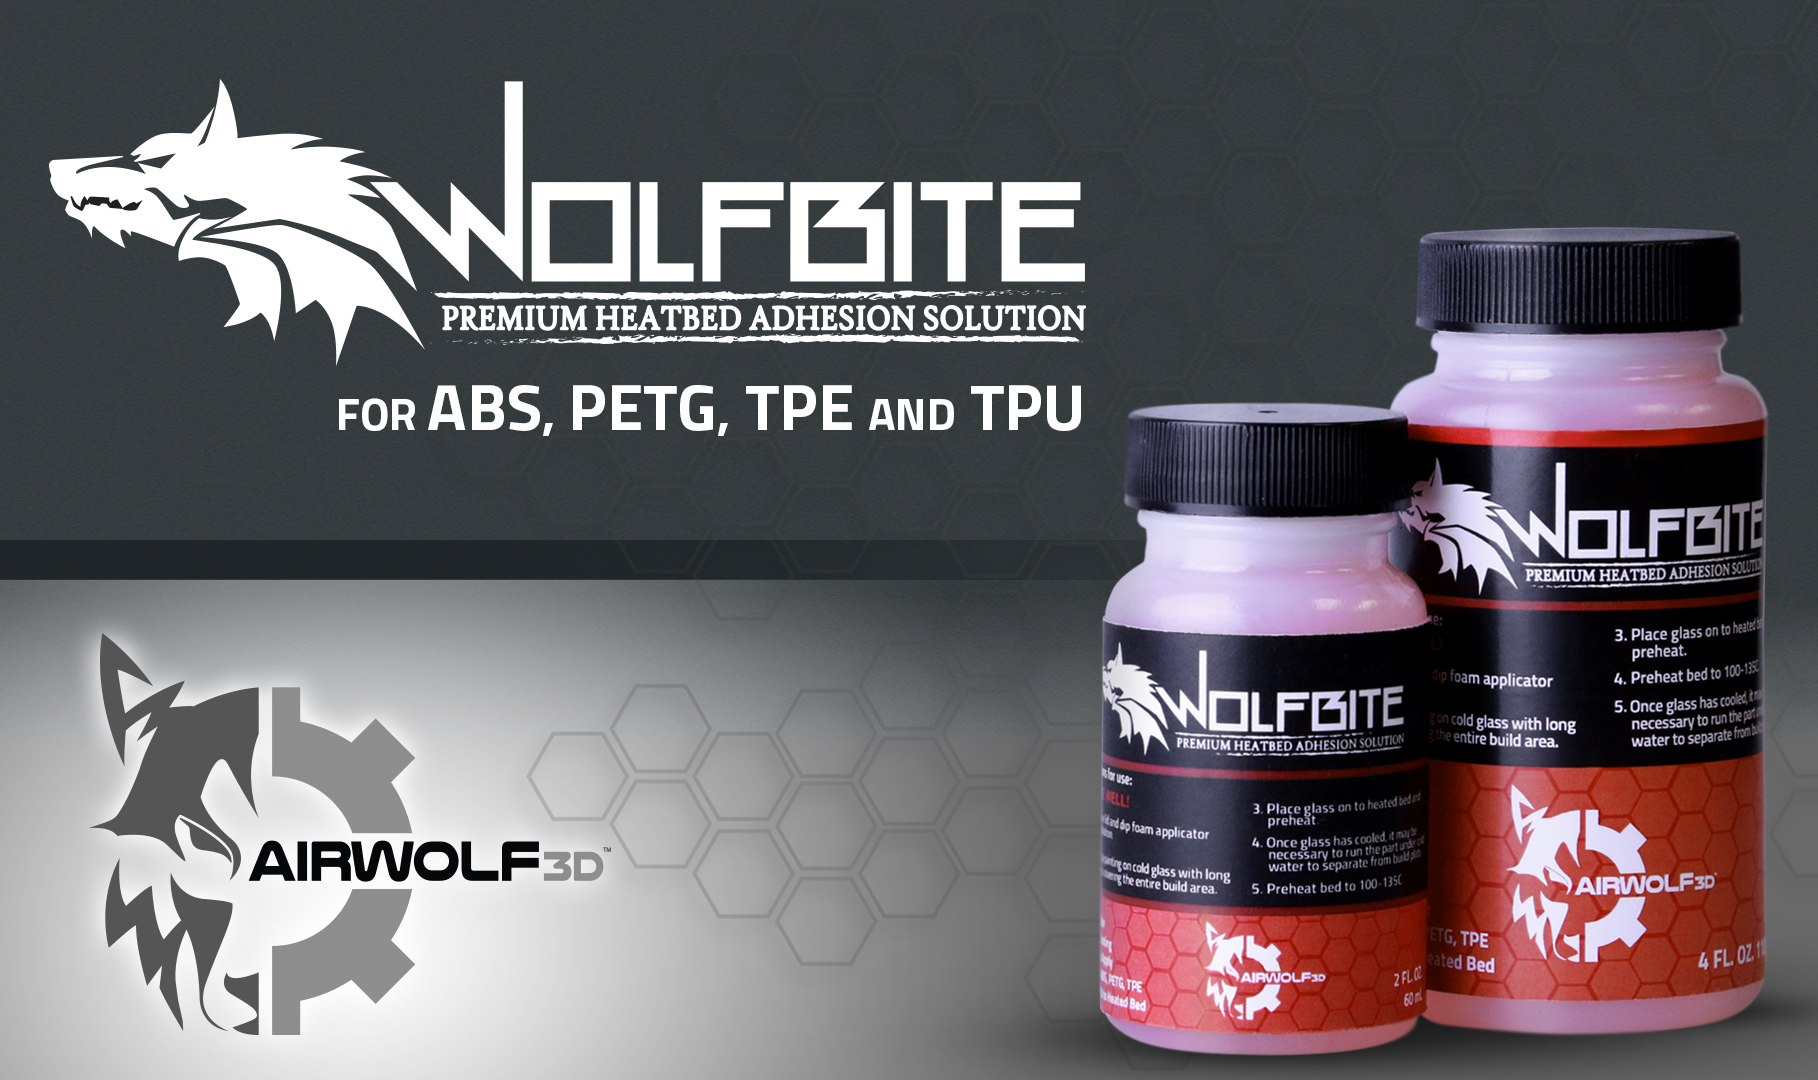 Wolfbite 3d Printer Adhesive Solution Prevents Parts From